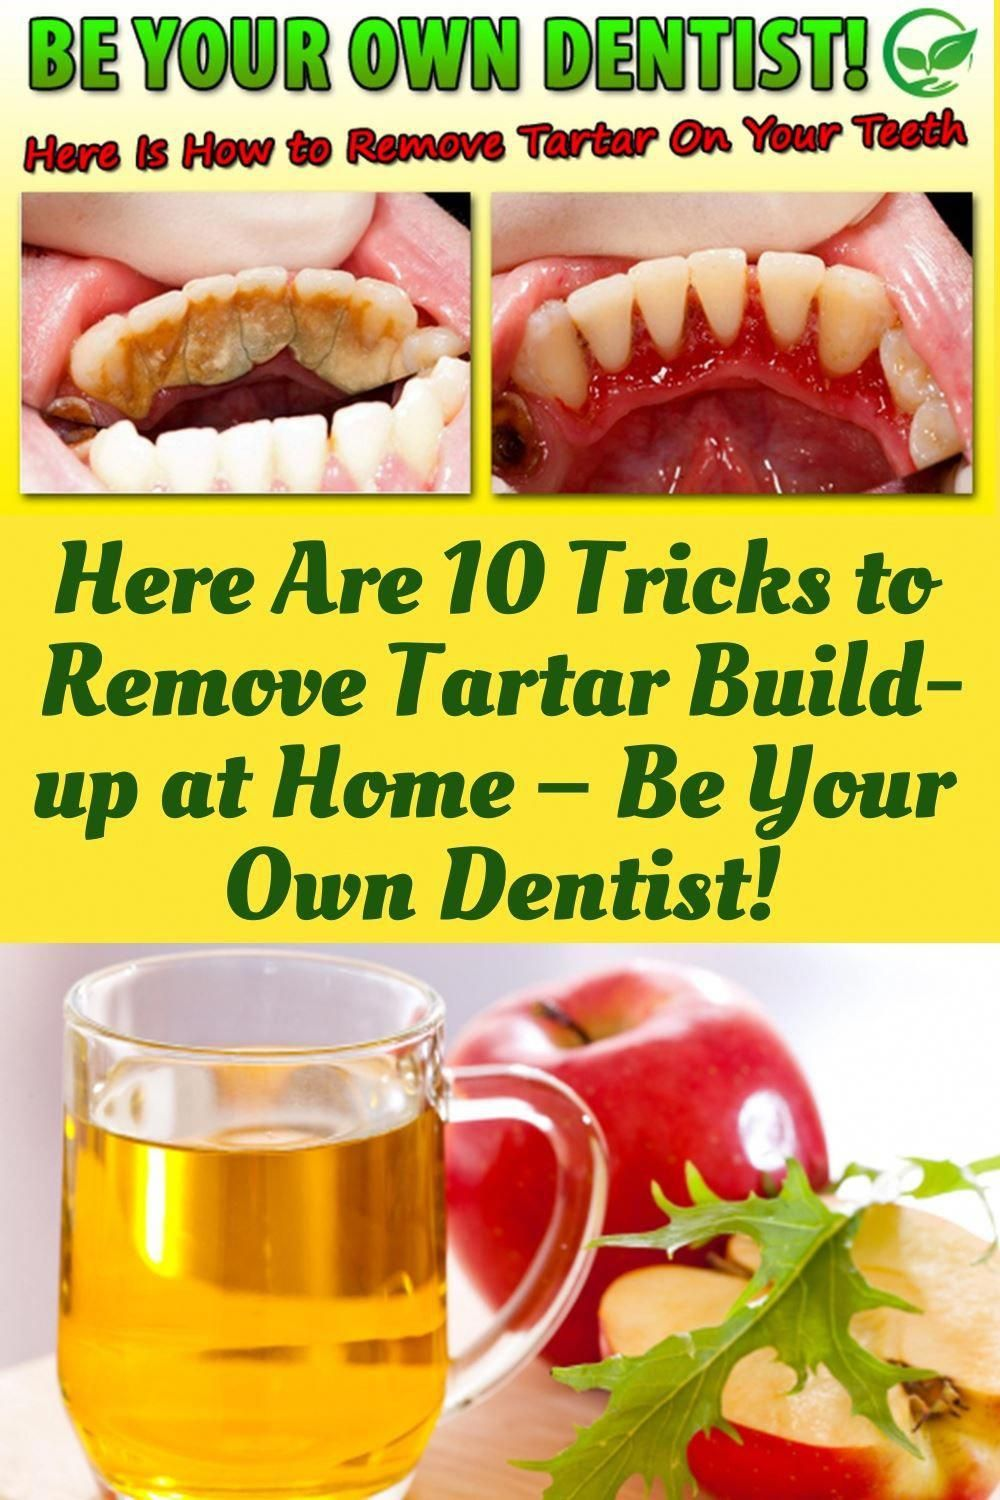 #here #are 10 #tricks #to #remove #tartar #build #up #at #home #be #your #own #dentist! #ProperOralHygiene